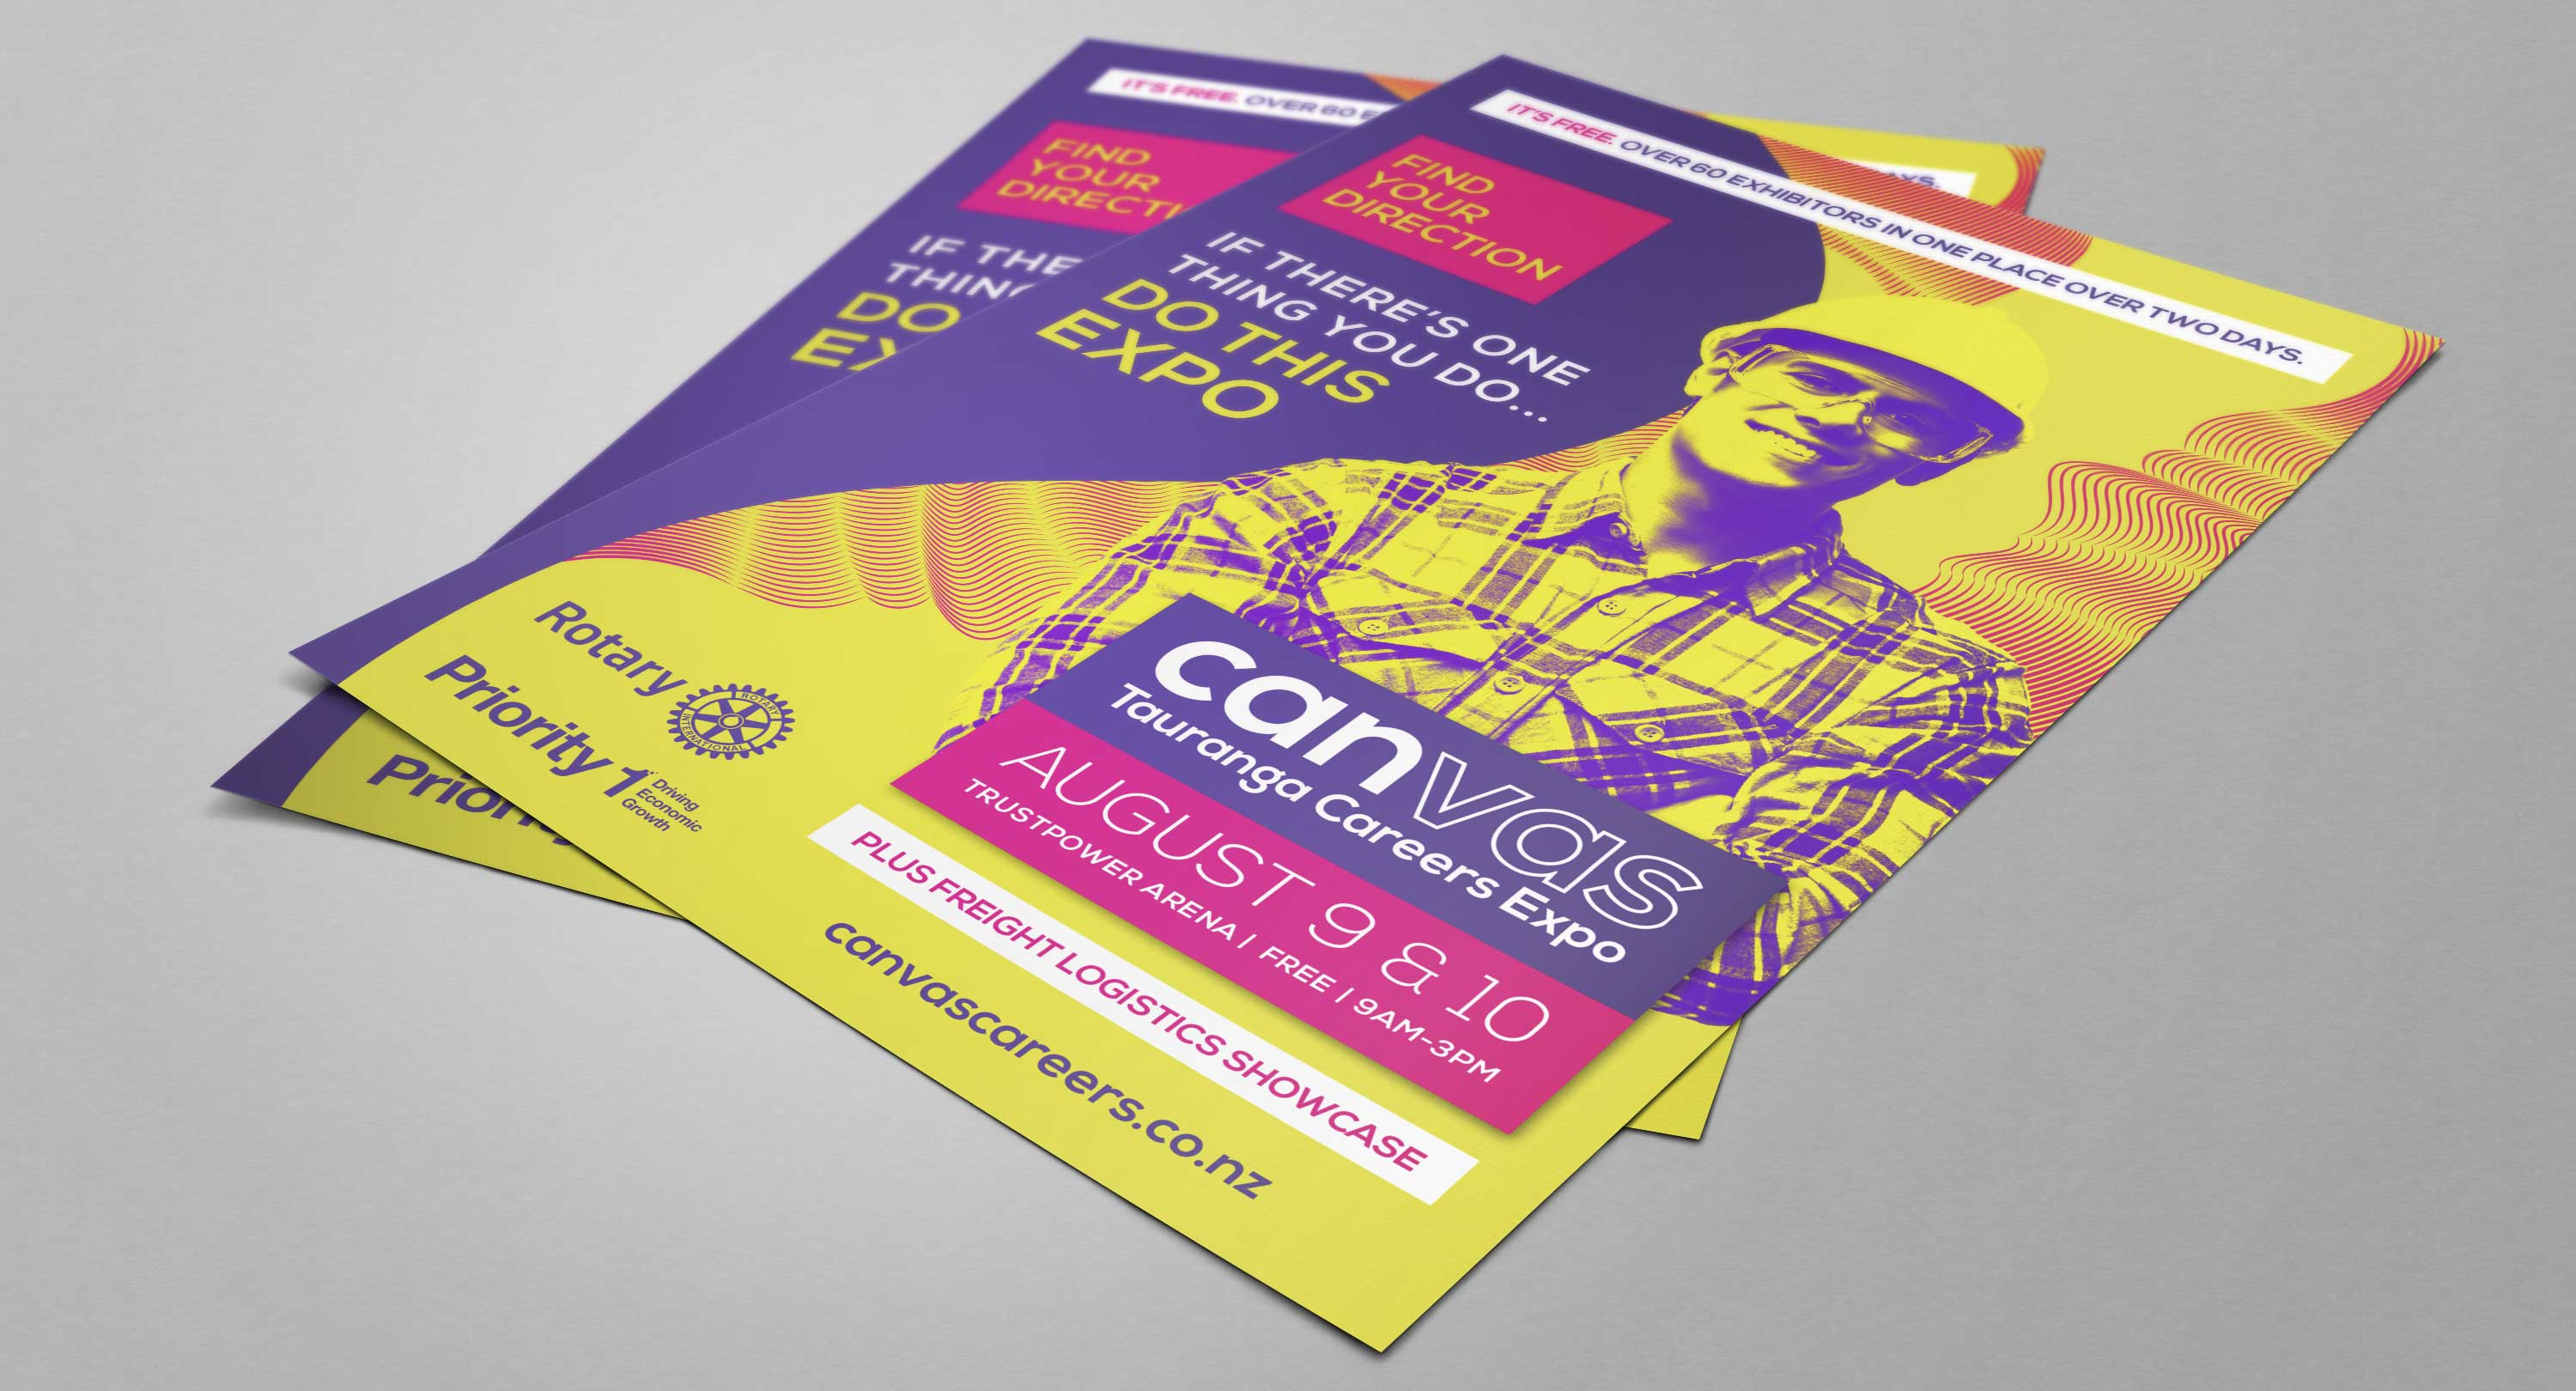 Marketing material Tuskany created for Canvas Careers Expo.